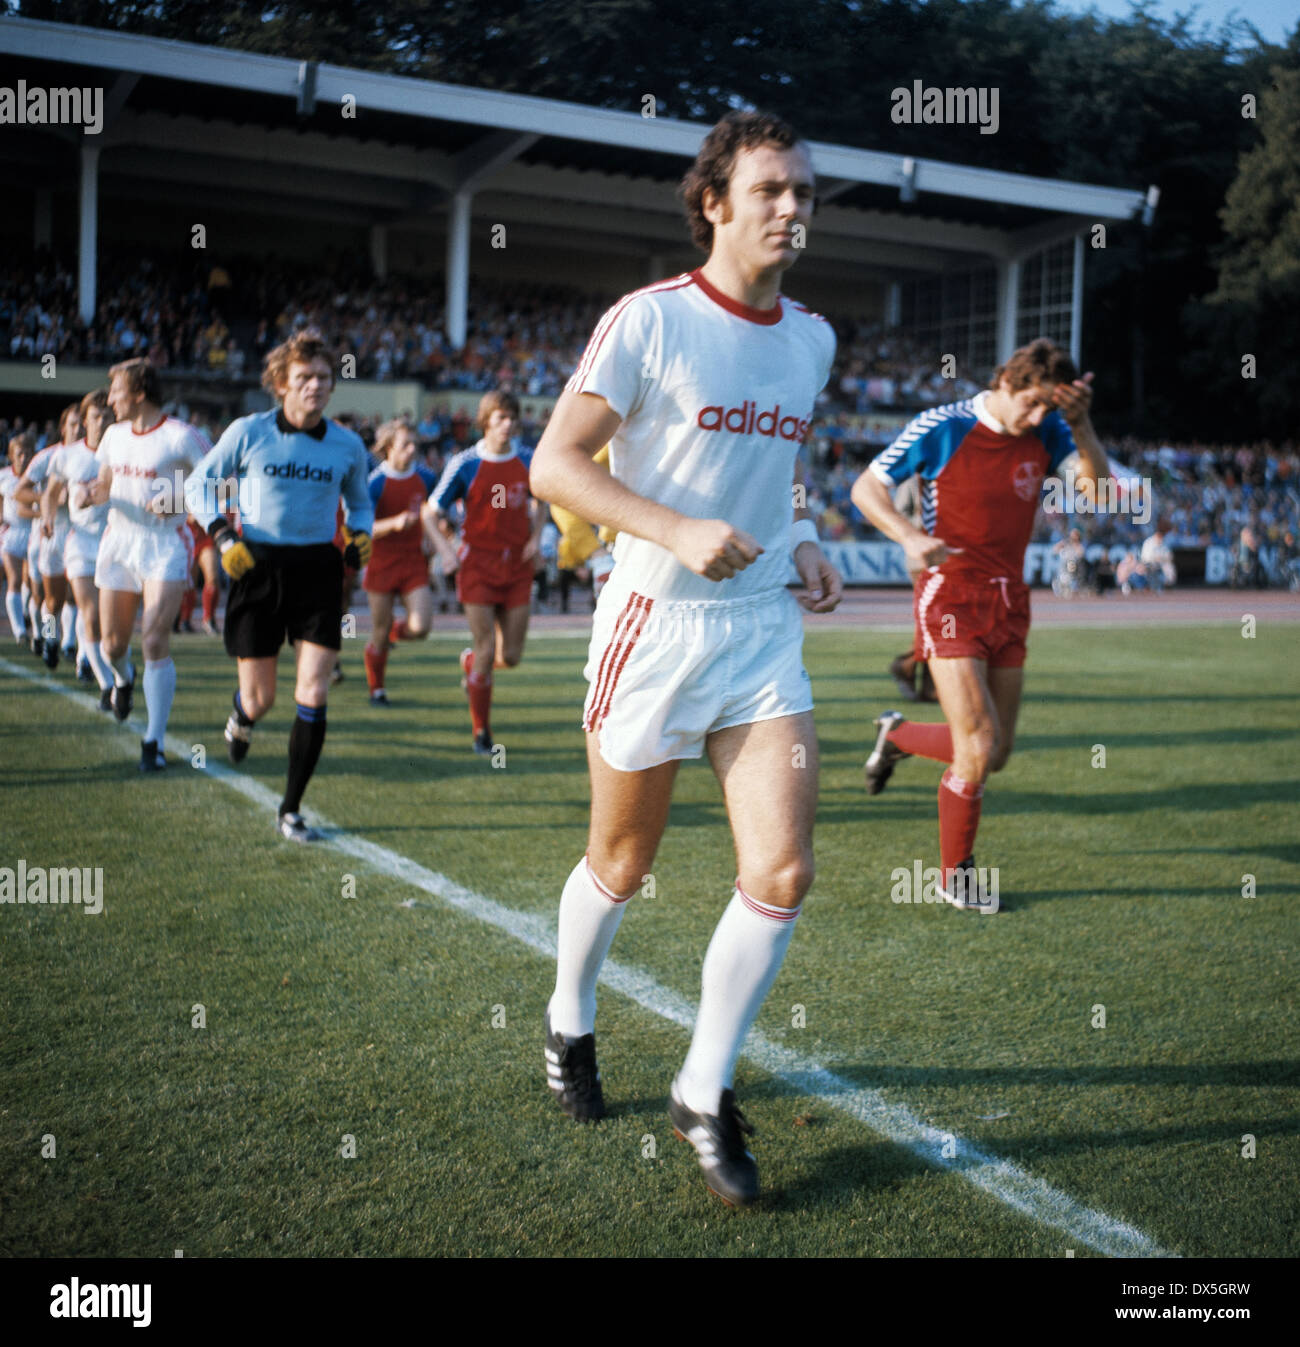 football, Bundesliga, 1975/1976, Grotenburg Stadium, FC Bayer 05 Uerdingen versus FC Bayern Munich 2:1, running-in of the teams, team leaders Paul Hahn (Uerdingen) right and Franz Beckenbauer (FCB) ahead, behind keeper Sepp Maier (FCB) - Stock Image